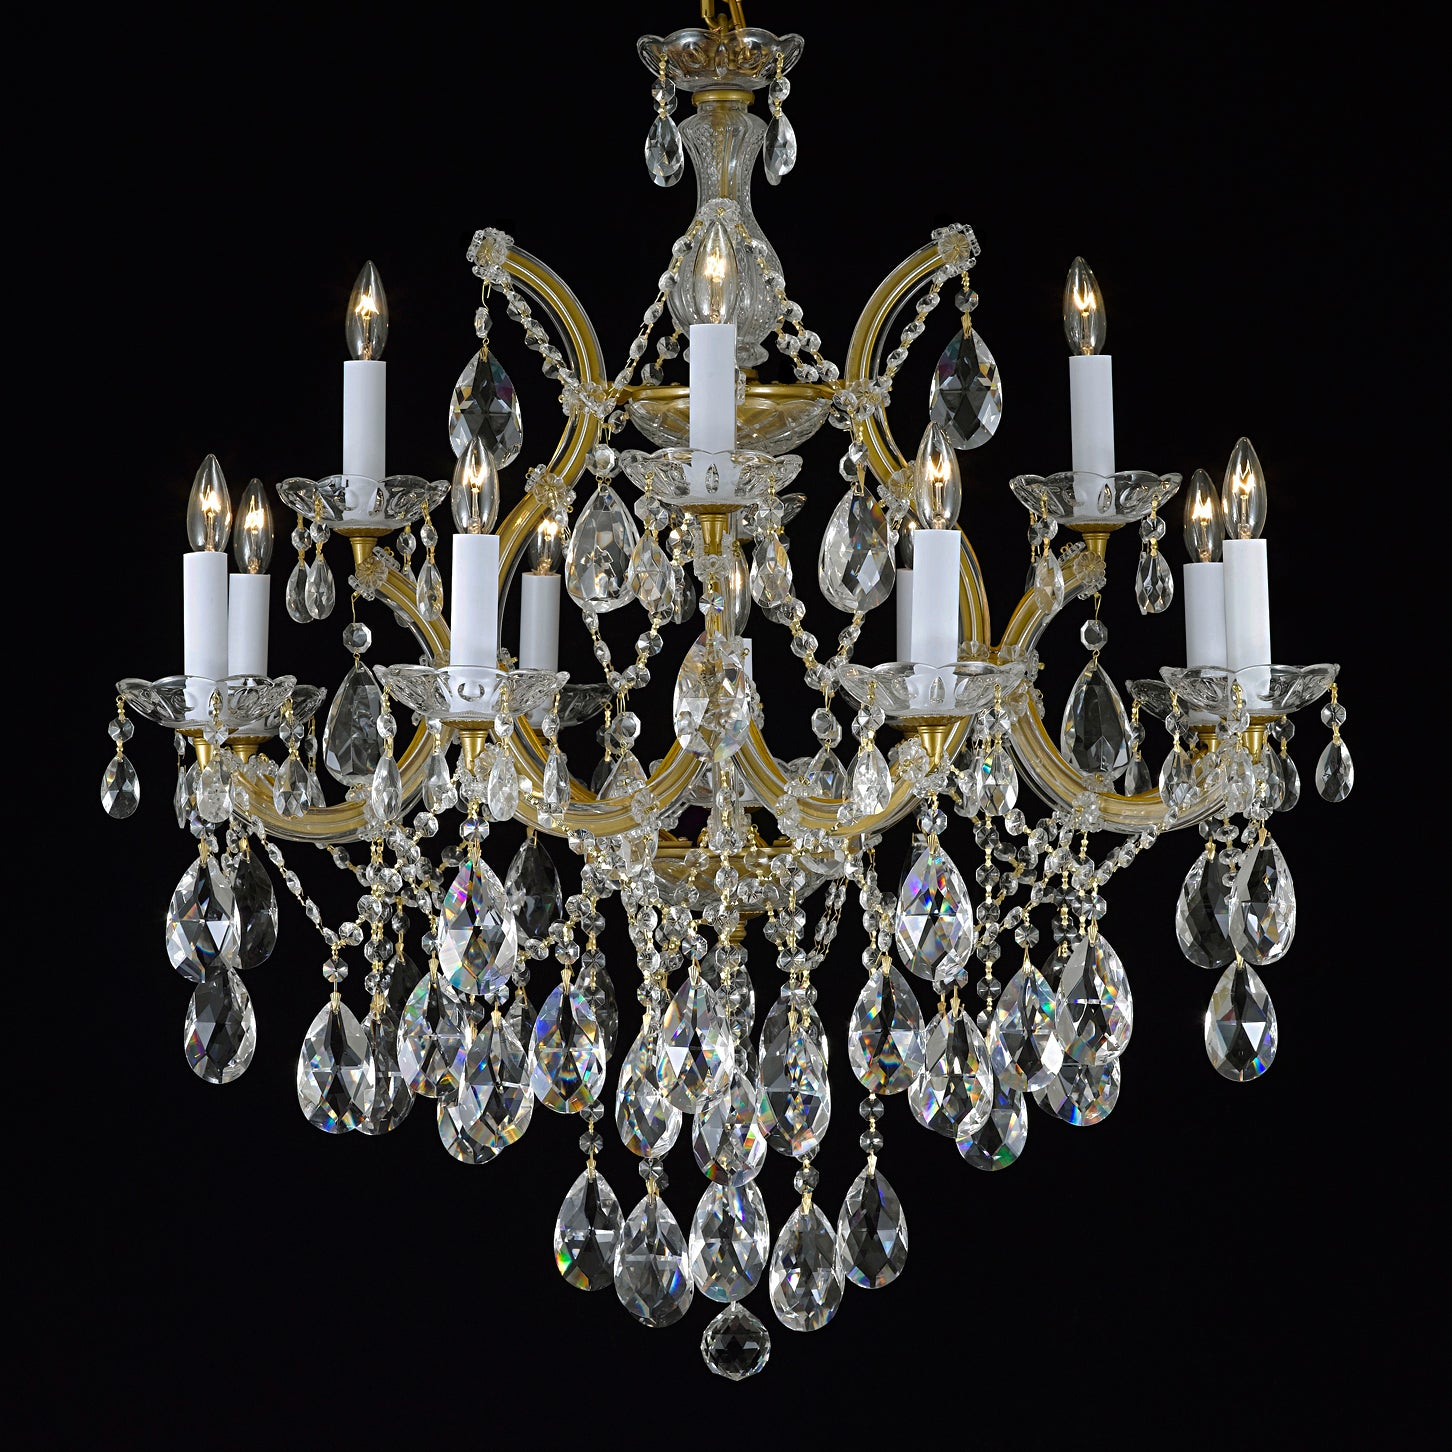 Gallery Maria Theresa 13-light 2-tier Antique French Gold...